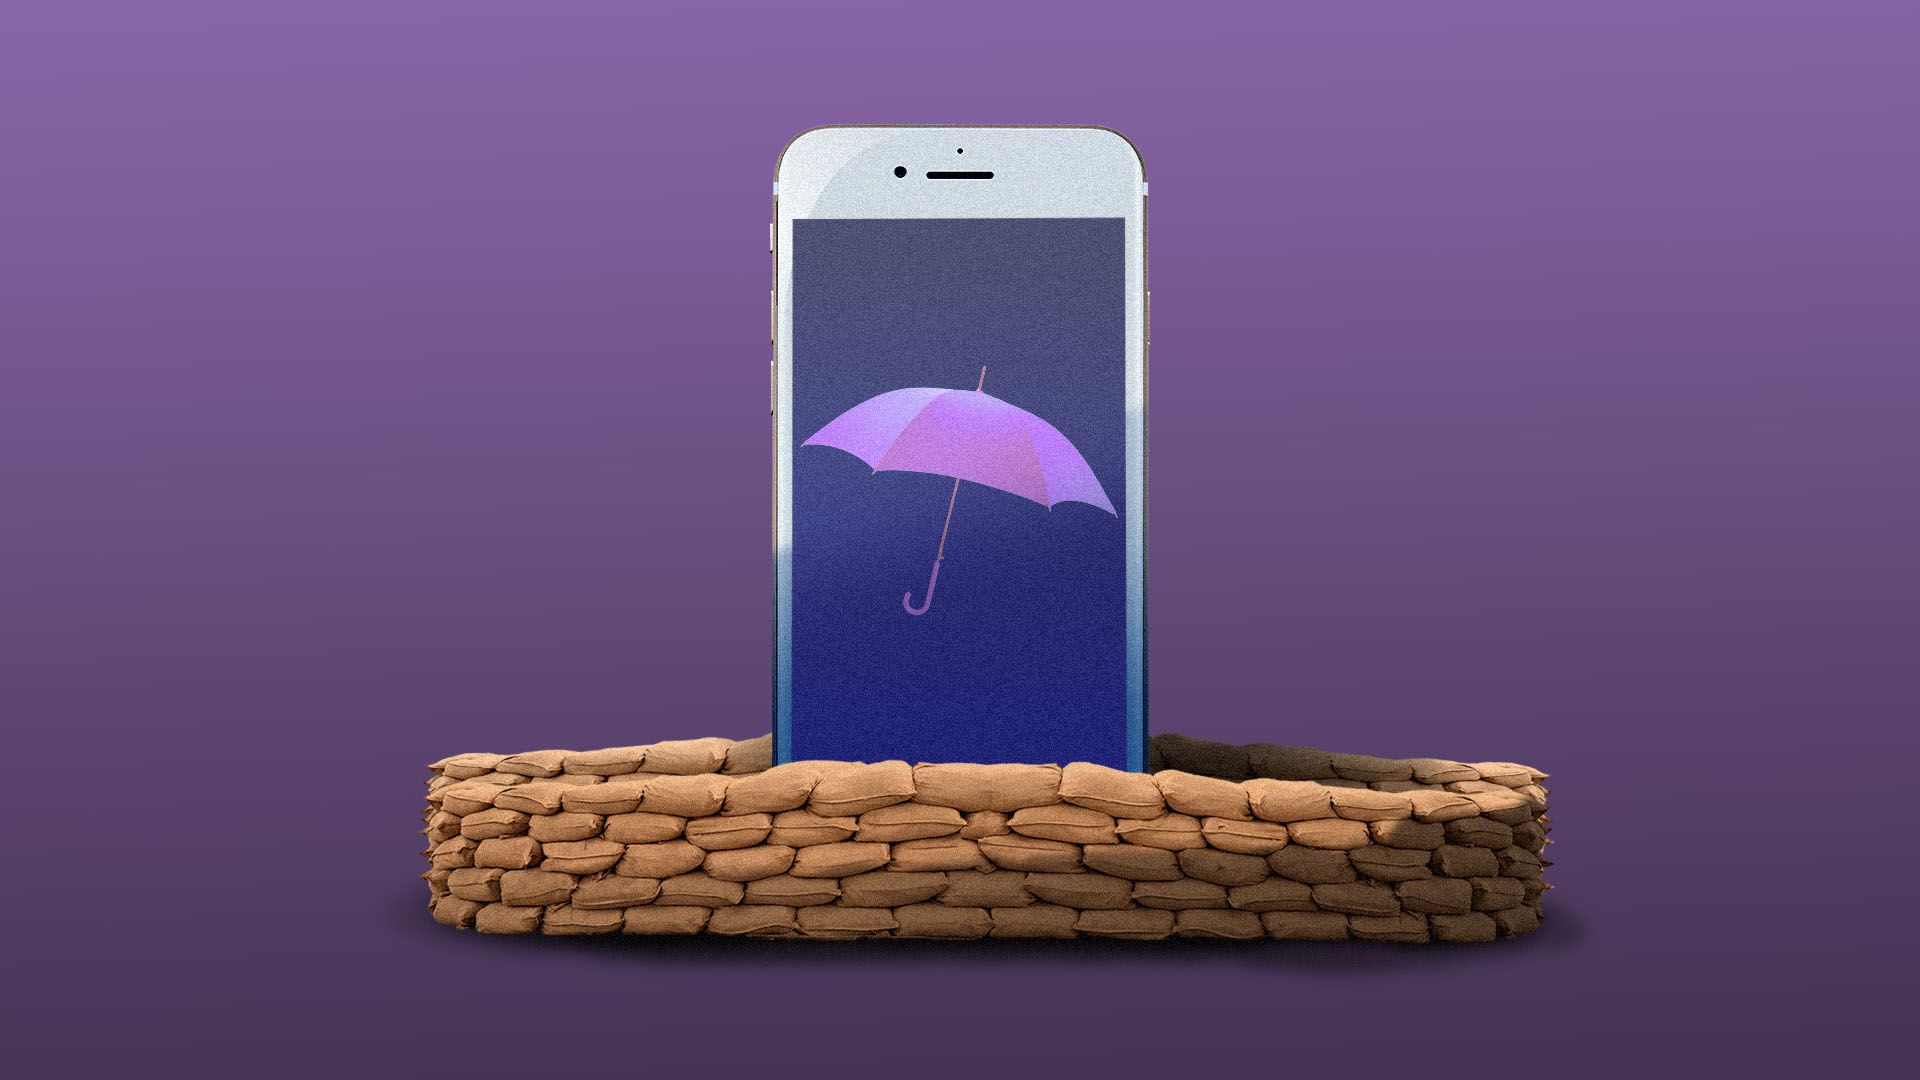 Illustration of a cell phone with an umbrella on the screen, surrounded by sandbags.